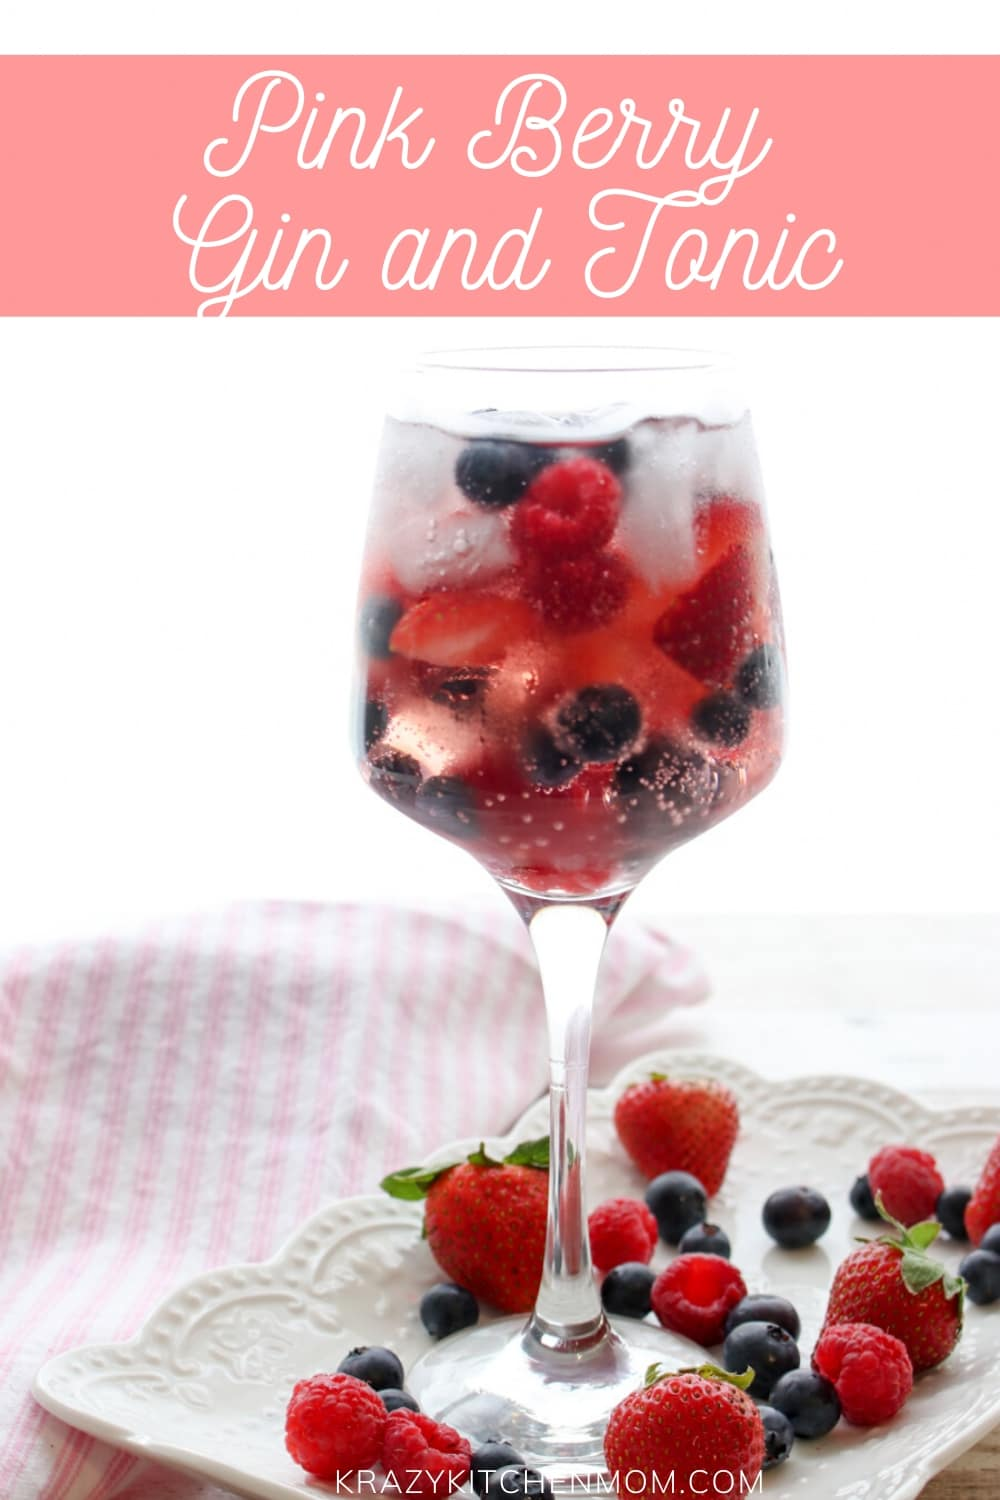 Pink Berry Gin and Tonic is a refreshing cocktail made with Pink Gin and filled with fresh strawberries, raspberries, and blueberries served over ice.  via @krazykitchenmom